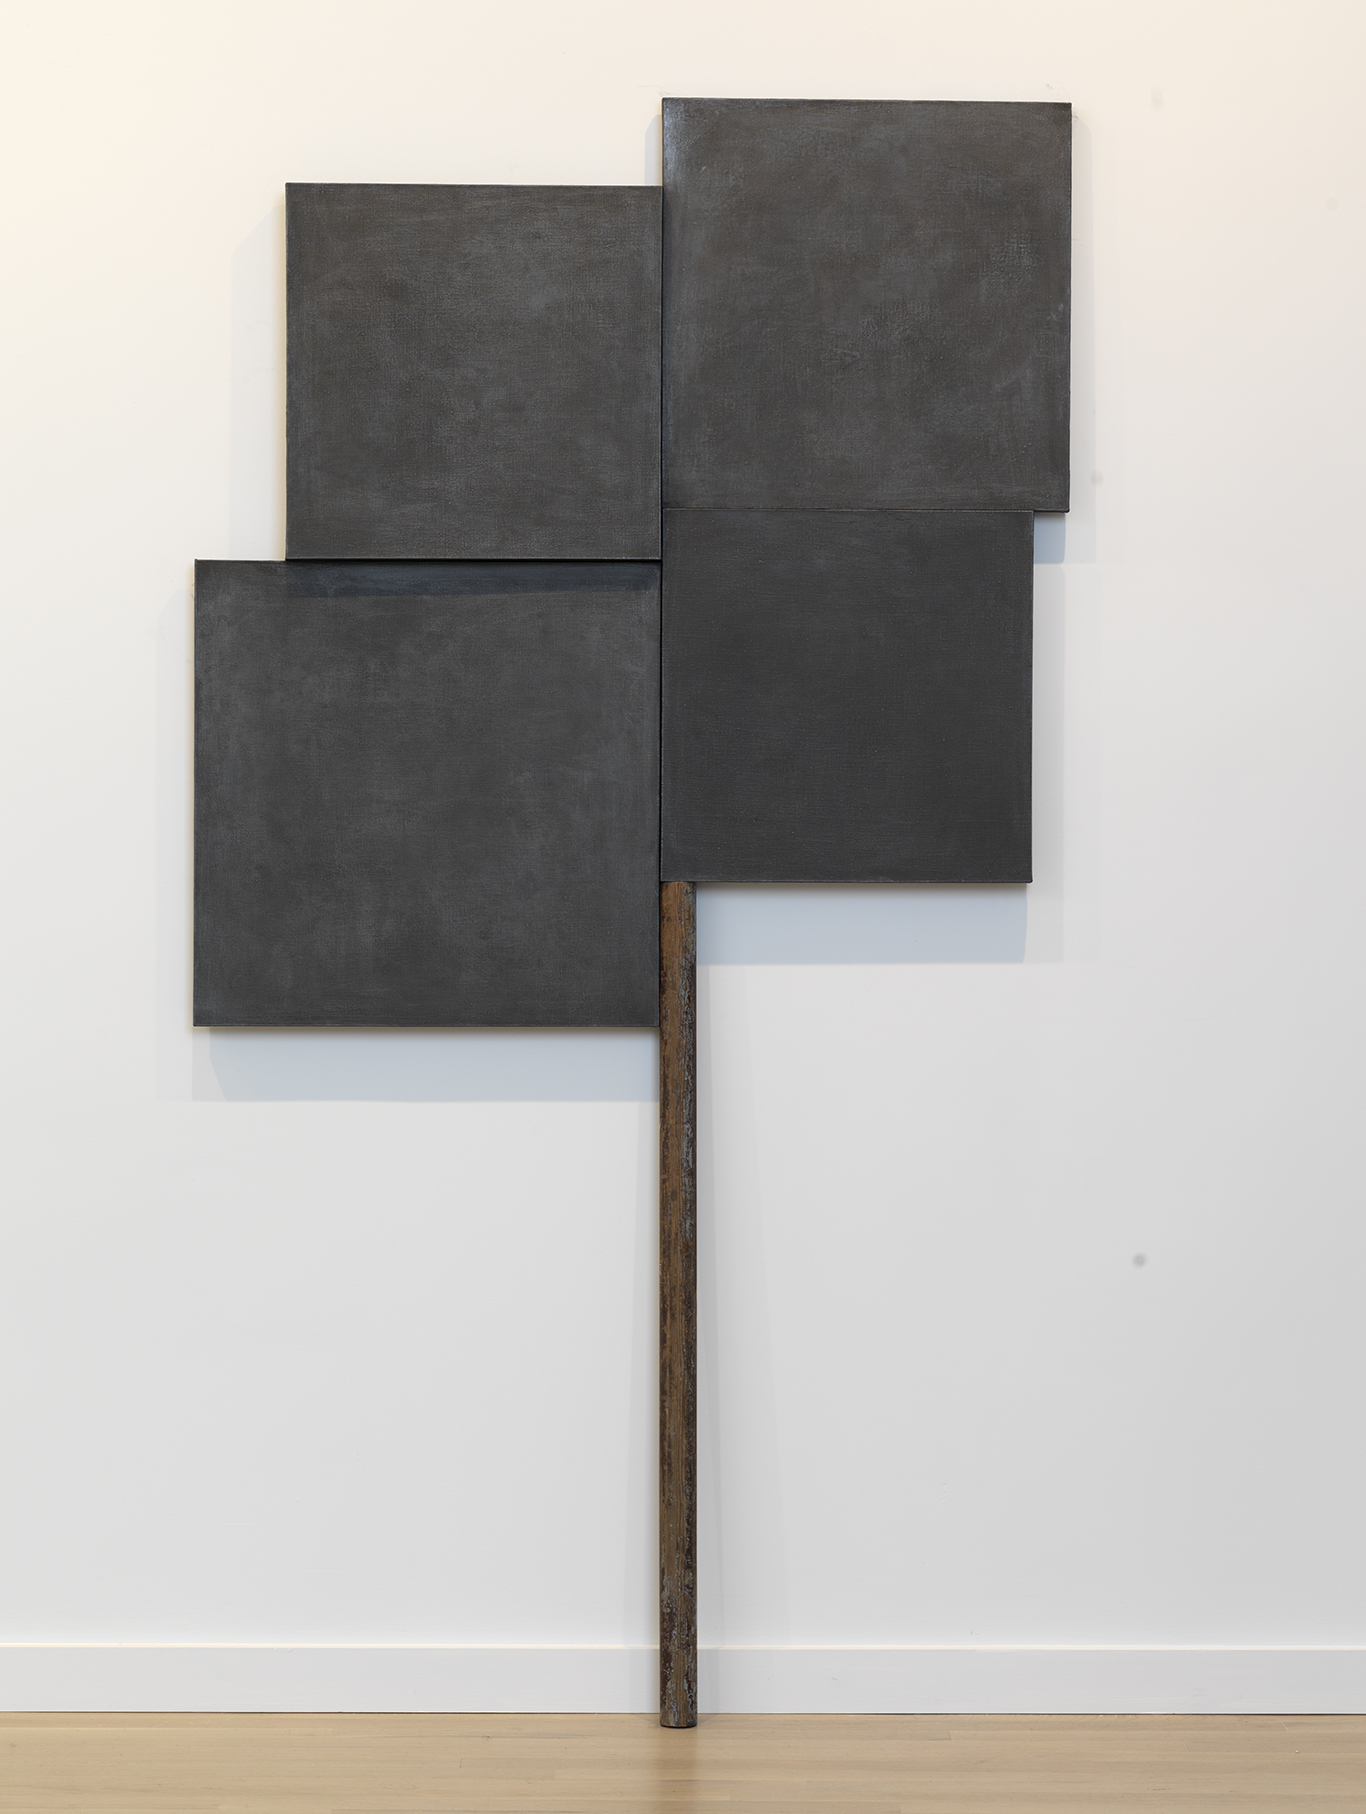 Denzil Hurley  Glyph Within, Without and About #2 , 2016-2018 Oil on canvas on panel and stick 97 x 48.5 inches